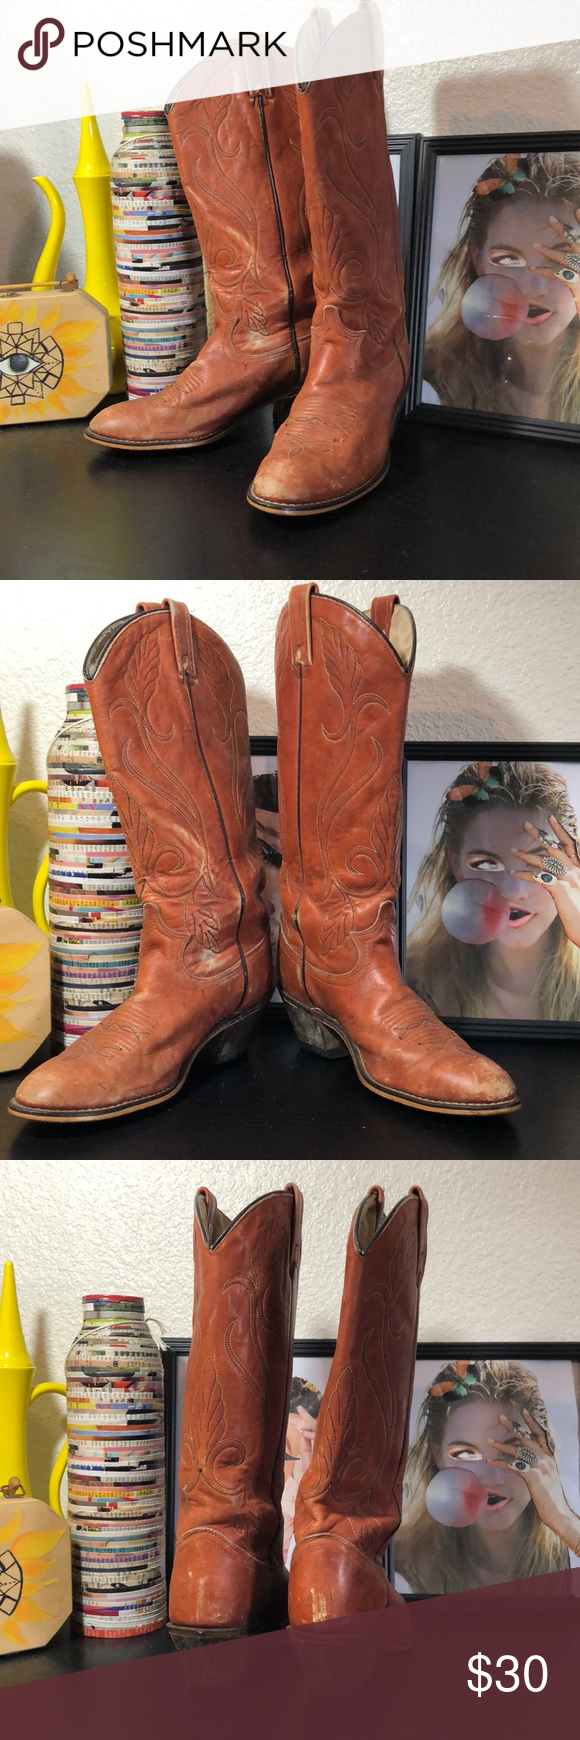 3f926e0e918 Vintage cowboy boots Awesome camel color boots Size 7.5 equals 9-9.5 ...